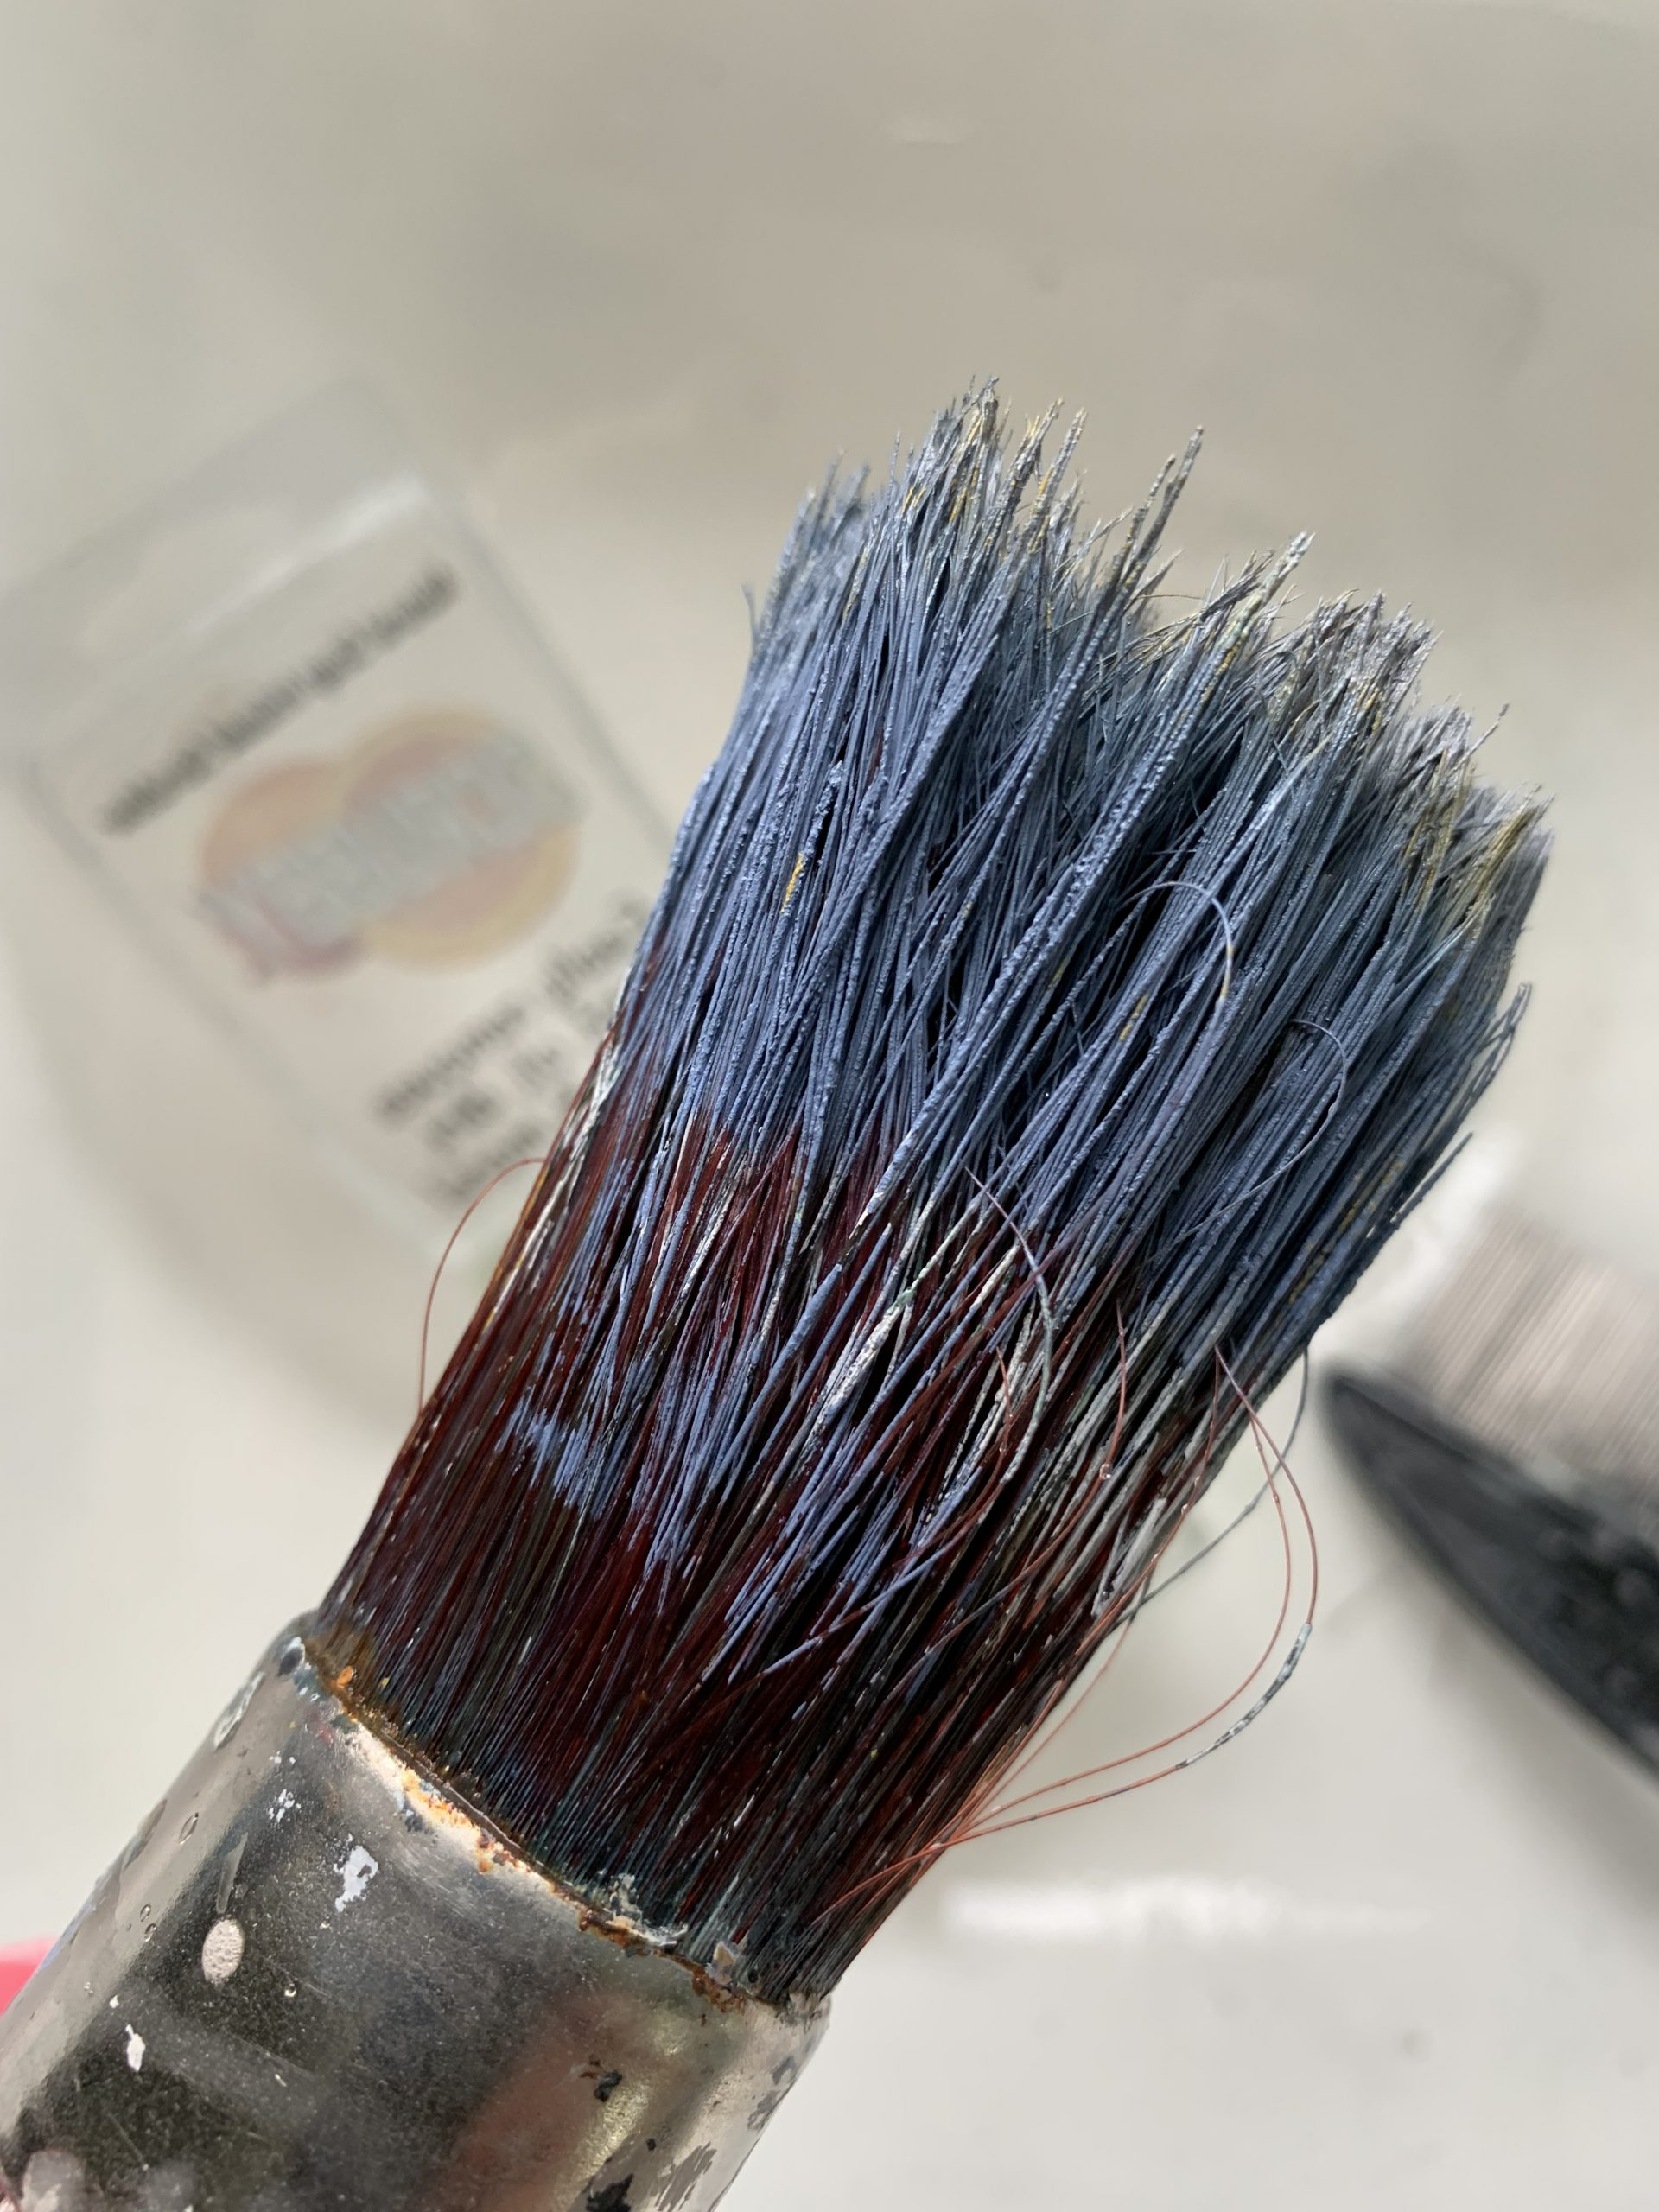 How to clean paint brushes. How do you clean a paint brush after use.